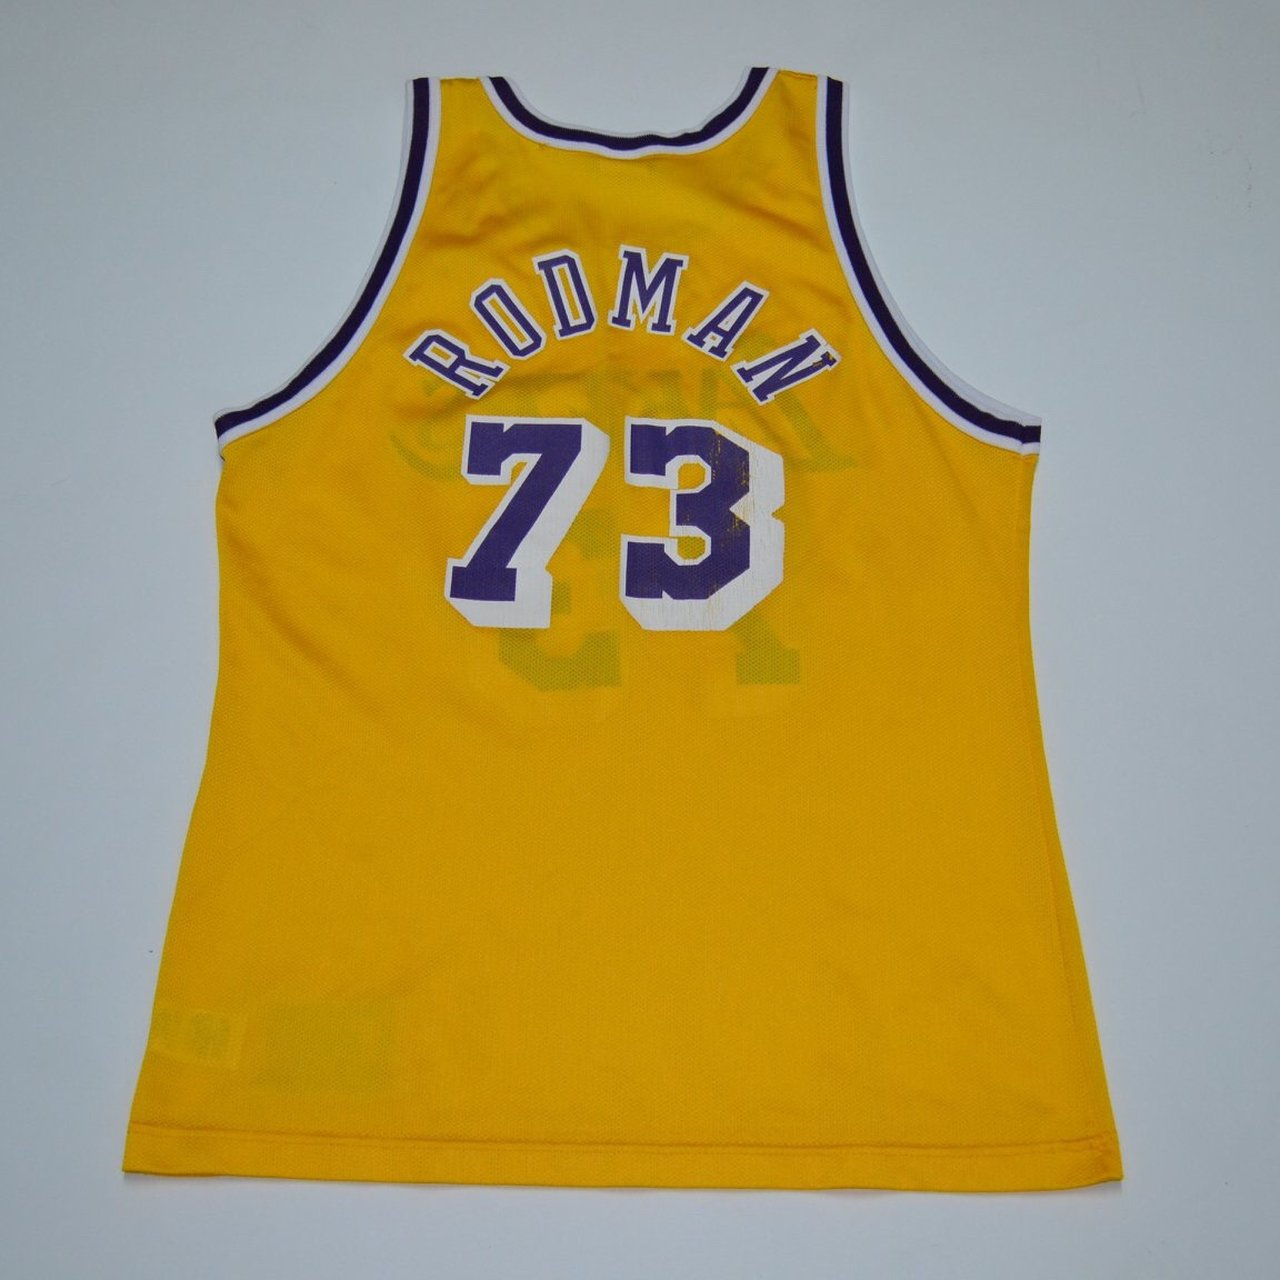 3a46a36caad0 RARE Dennis Rodman Lakers jersey Vintage made by purple and - Depop